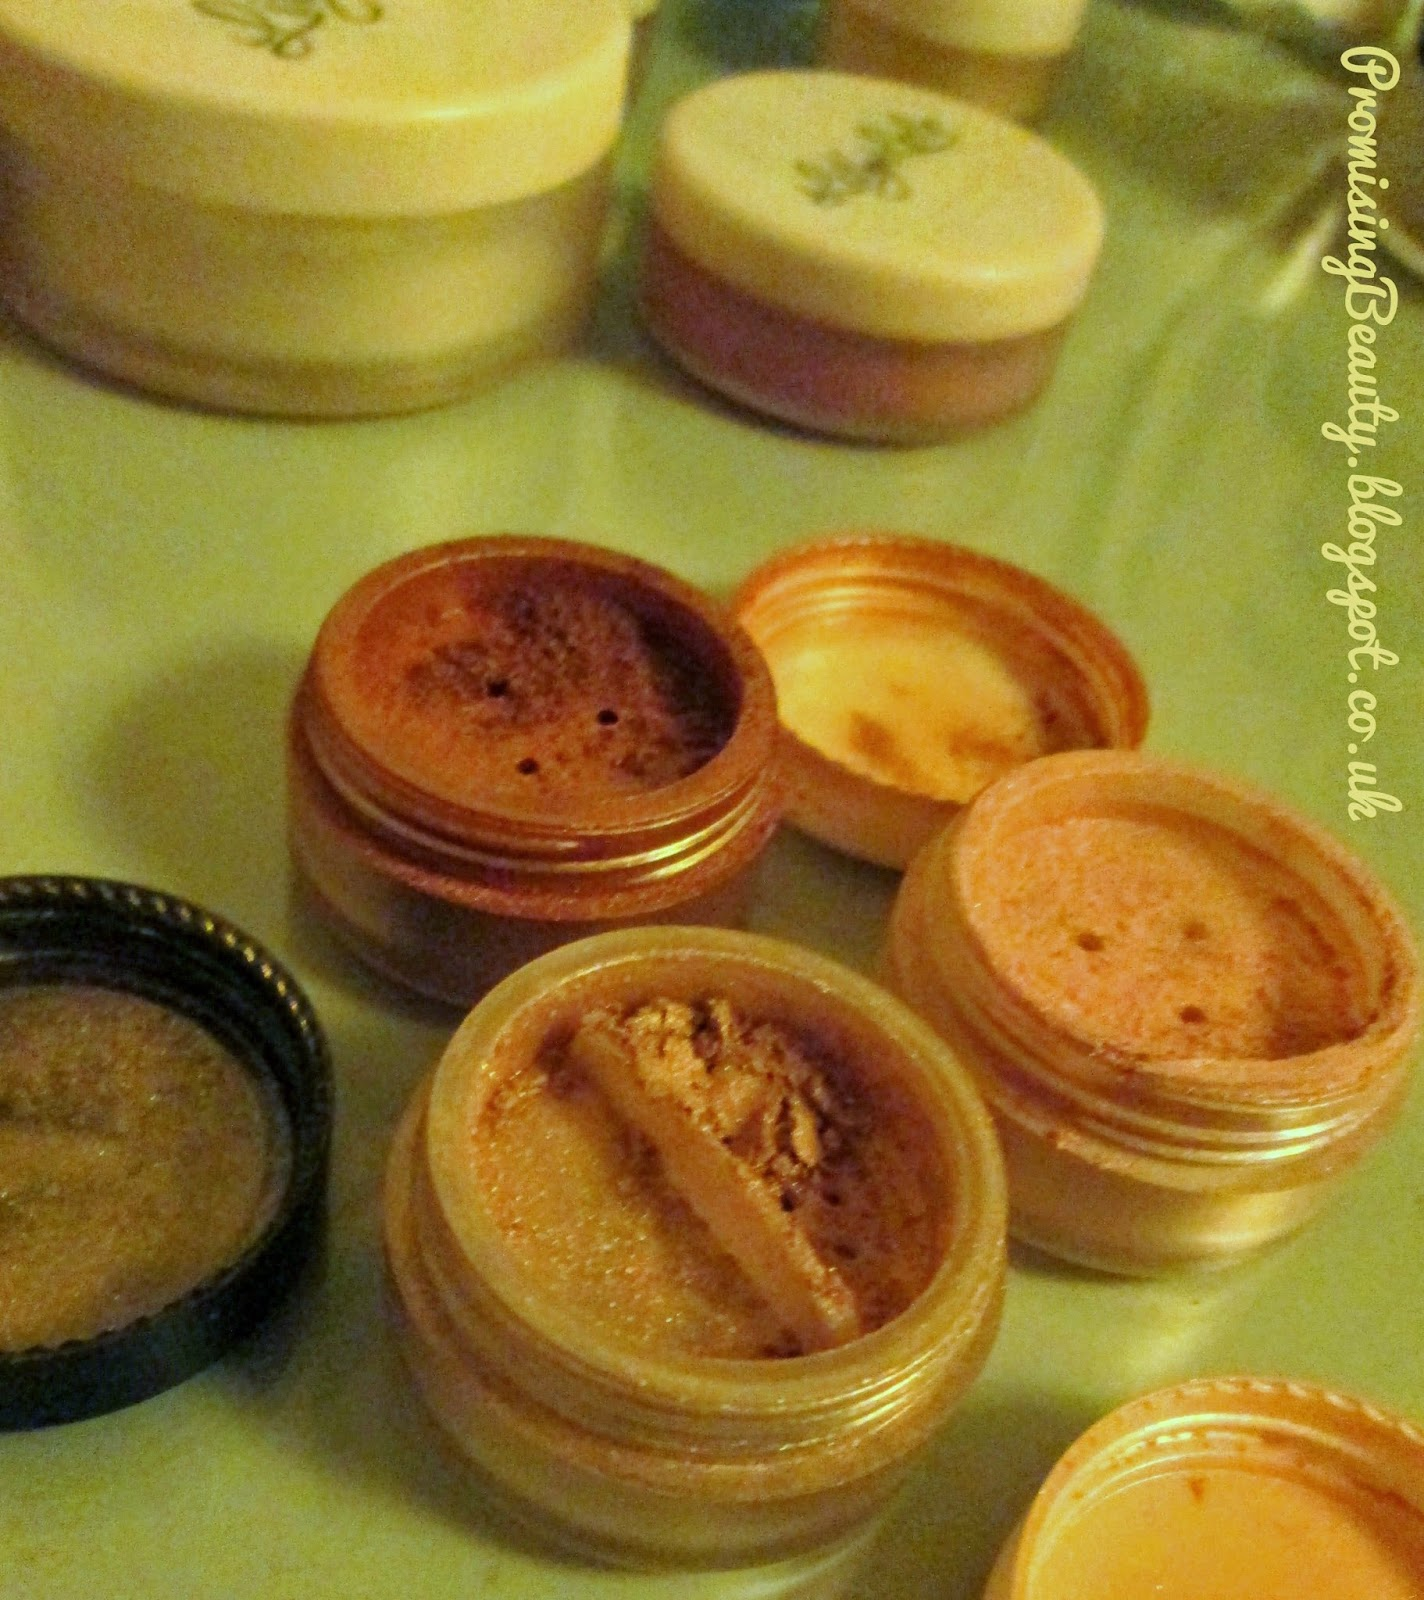 Lily Lolo mineral make up eyeshadows in bronze sparkle, gold digger and pink champagne